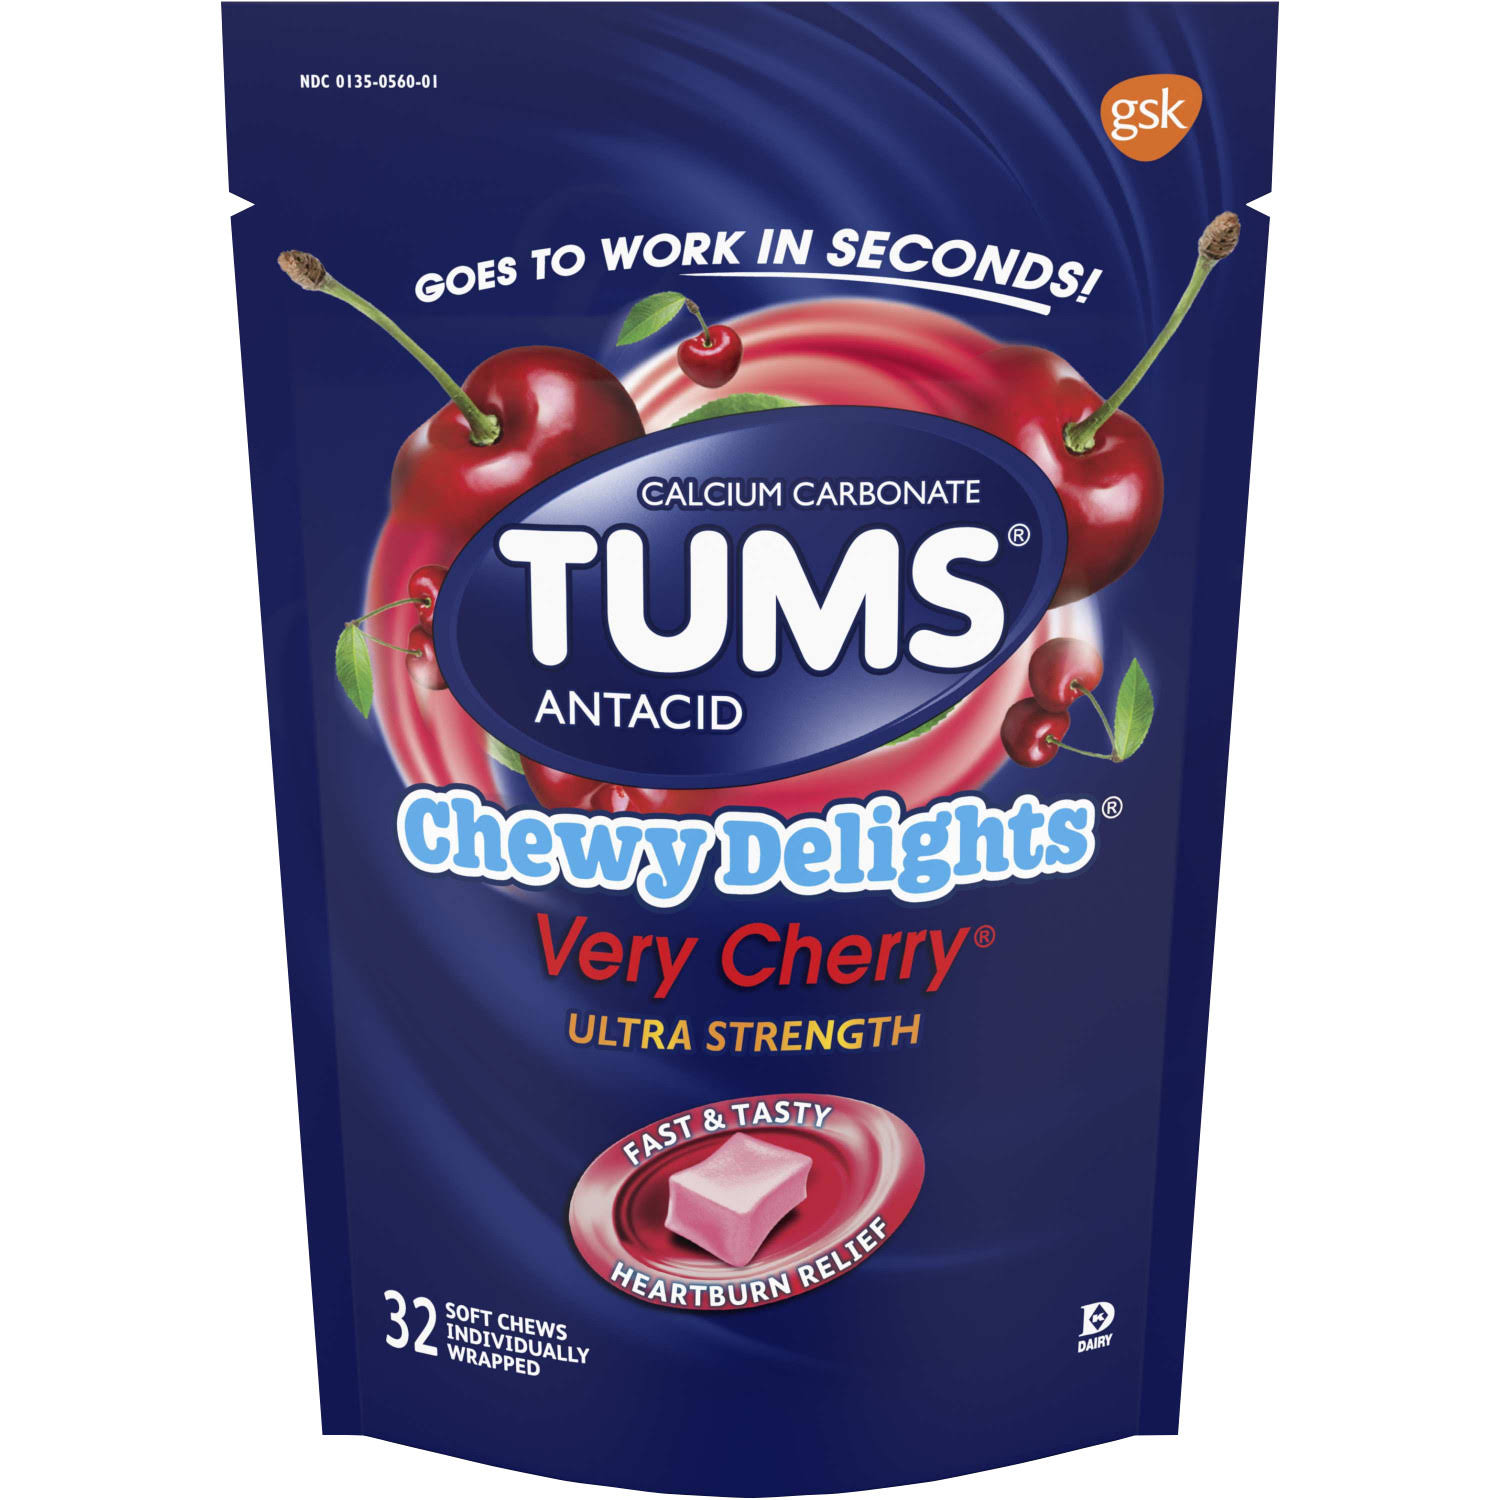 Tums Chewy Delights Antacid, Ultra Strength, Soft Chews, Very Cherry - 32 chews